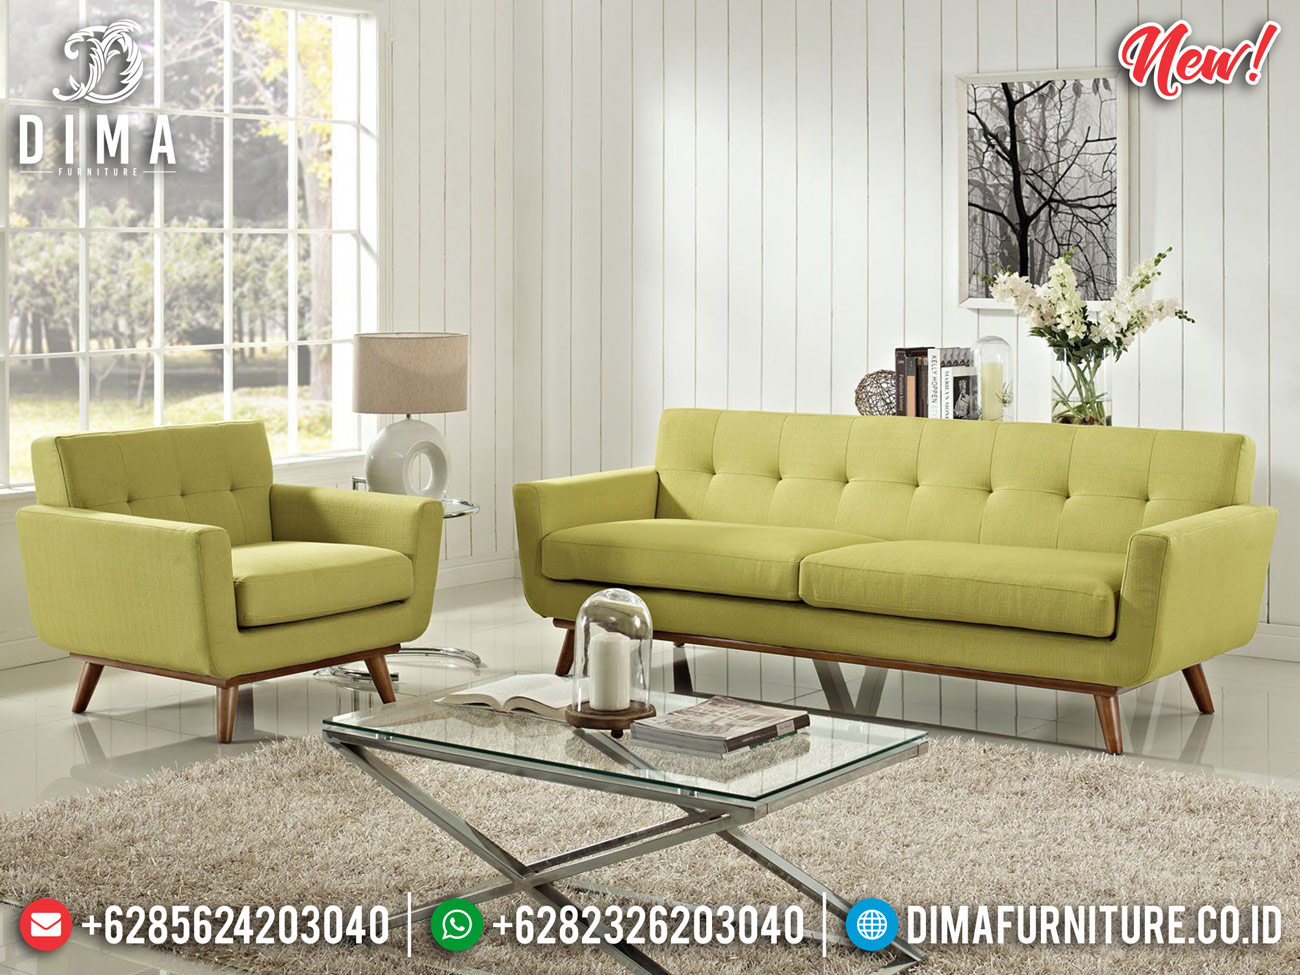 Set Sofa Tamu Minimalis Natural Kayu Jati Perhutani Best Seller TTJ-0841